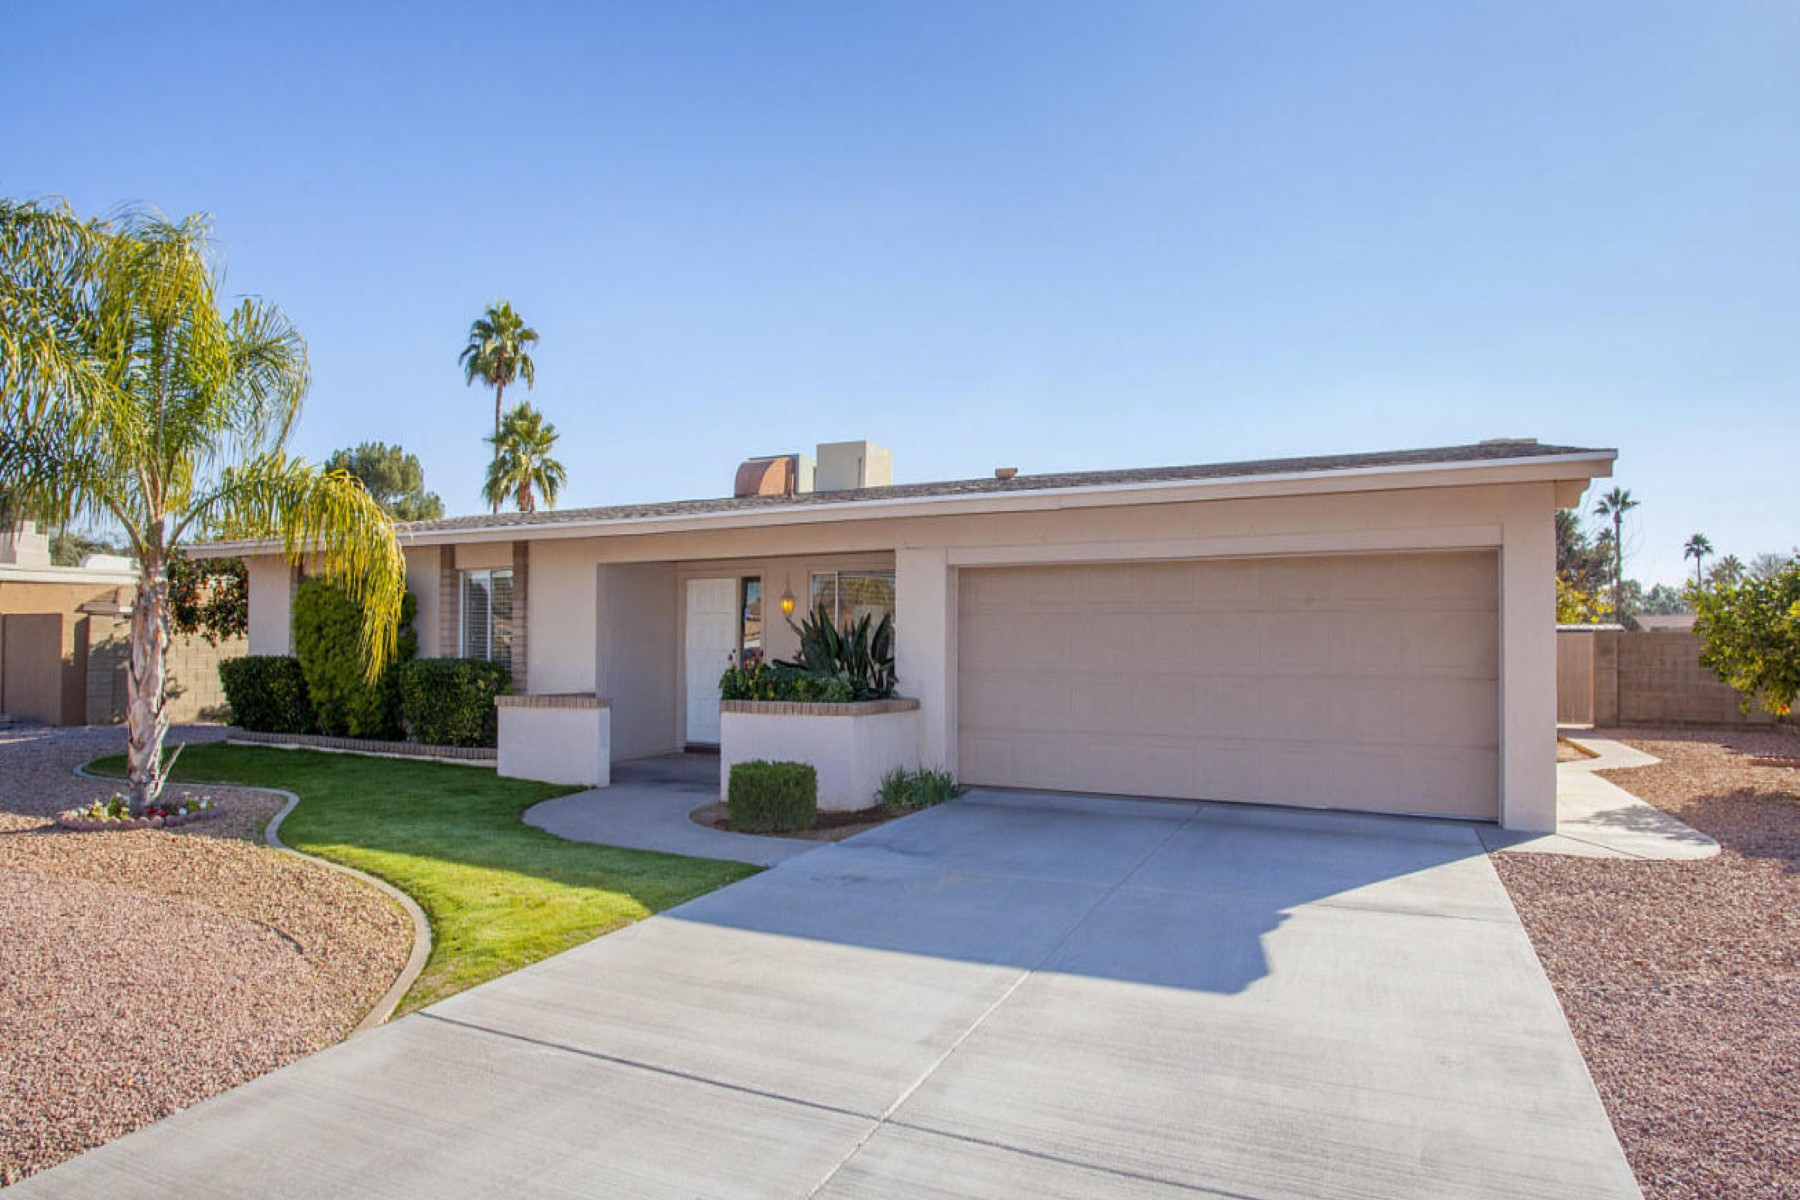 Maison unifamiliale pour l Vente à Beautiful curb appeal in the highly coveted area of 52nd and Cactu 5109 E Shaw Butte Dr Scottsdale, Arizona 85254 États-Unis